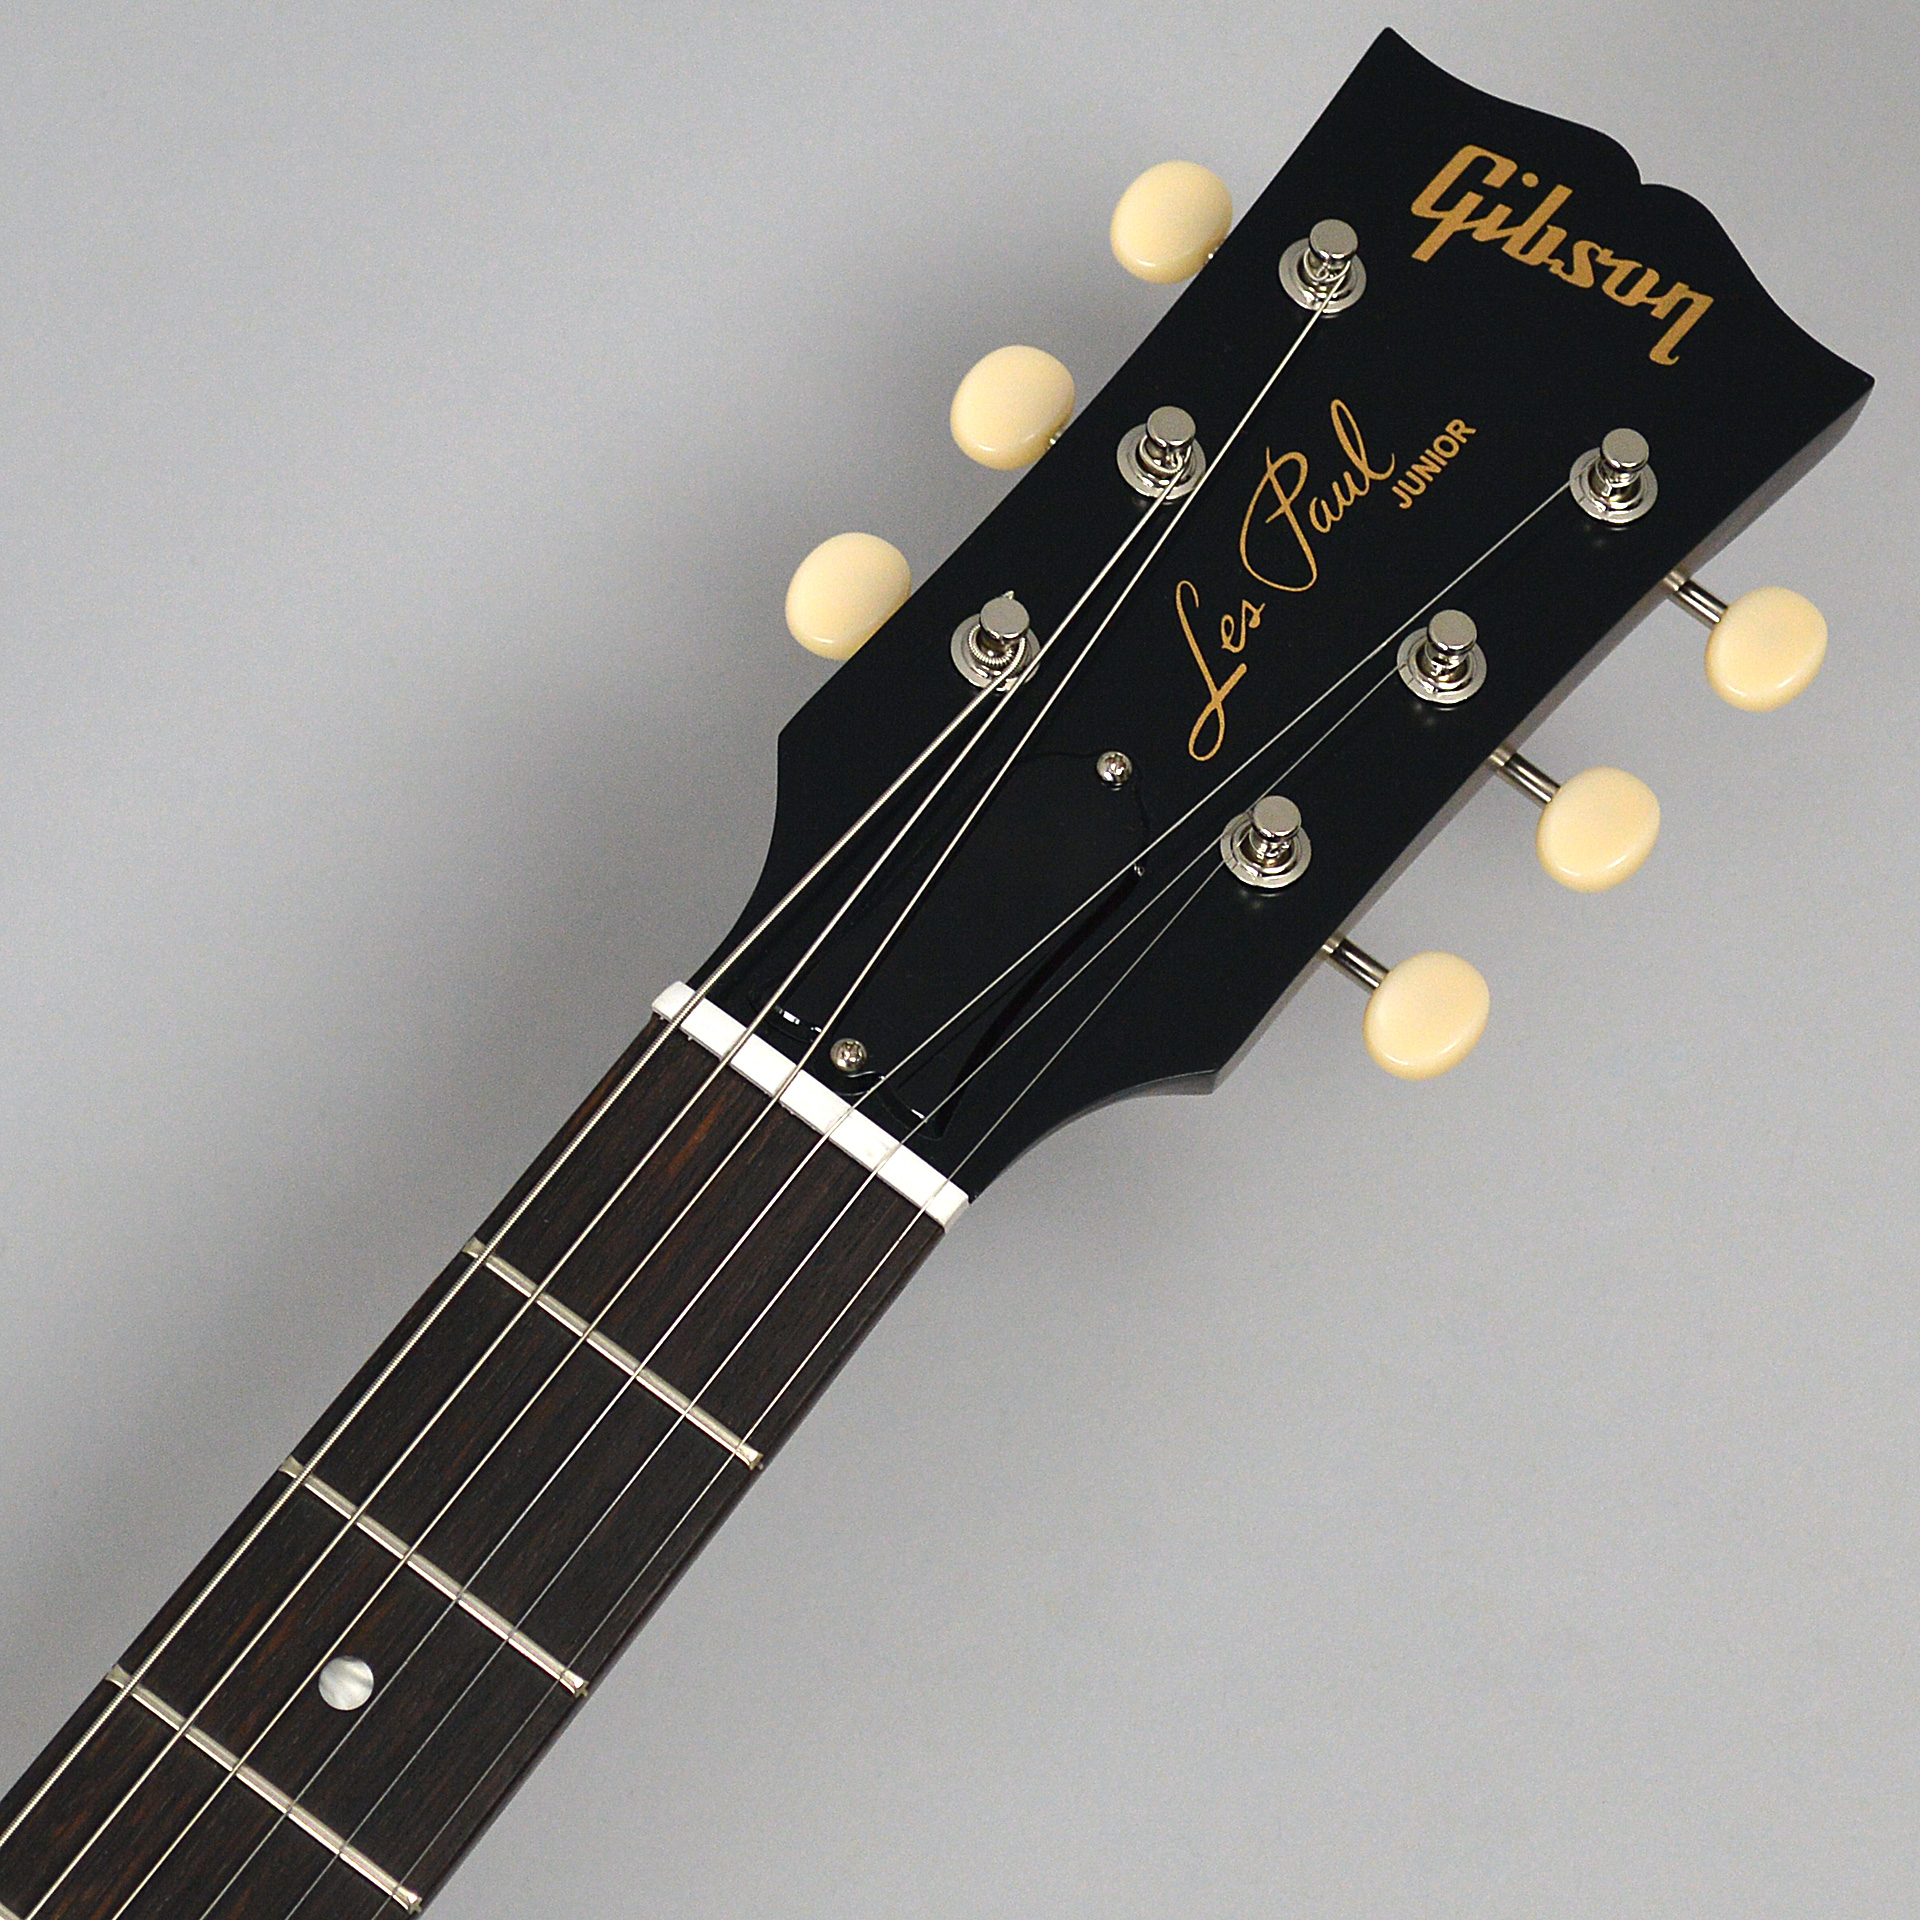 Les Paul Junior Tribute Double Cut 2019 Worn Brownのヘッド画像